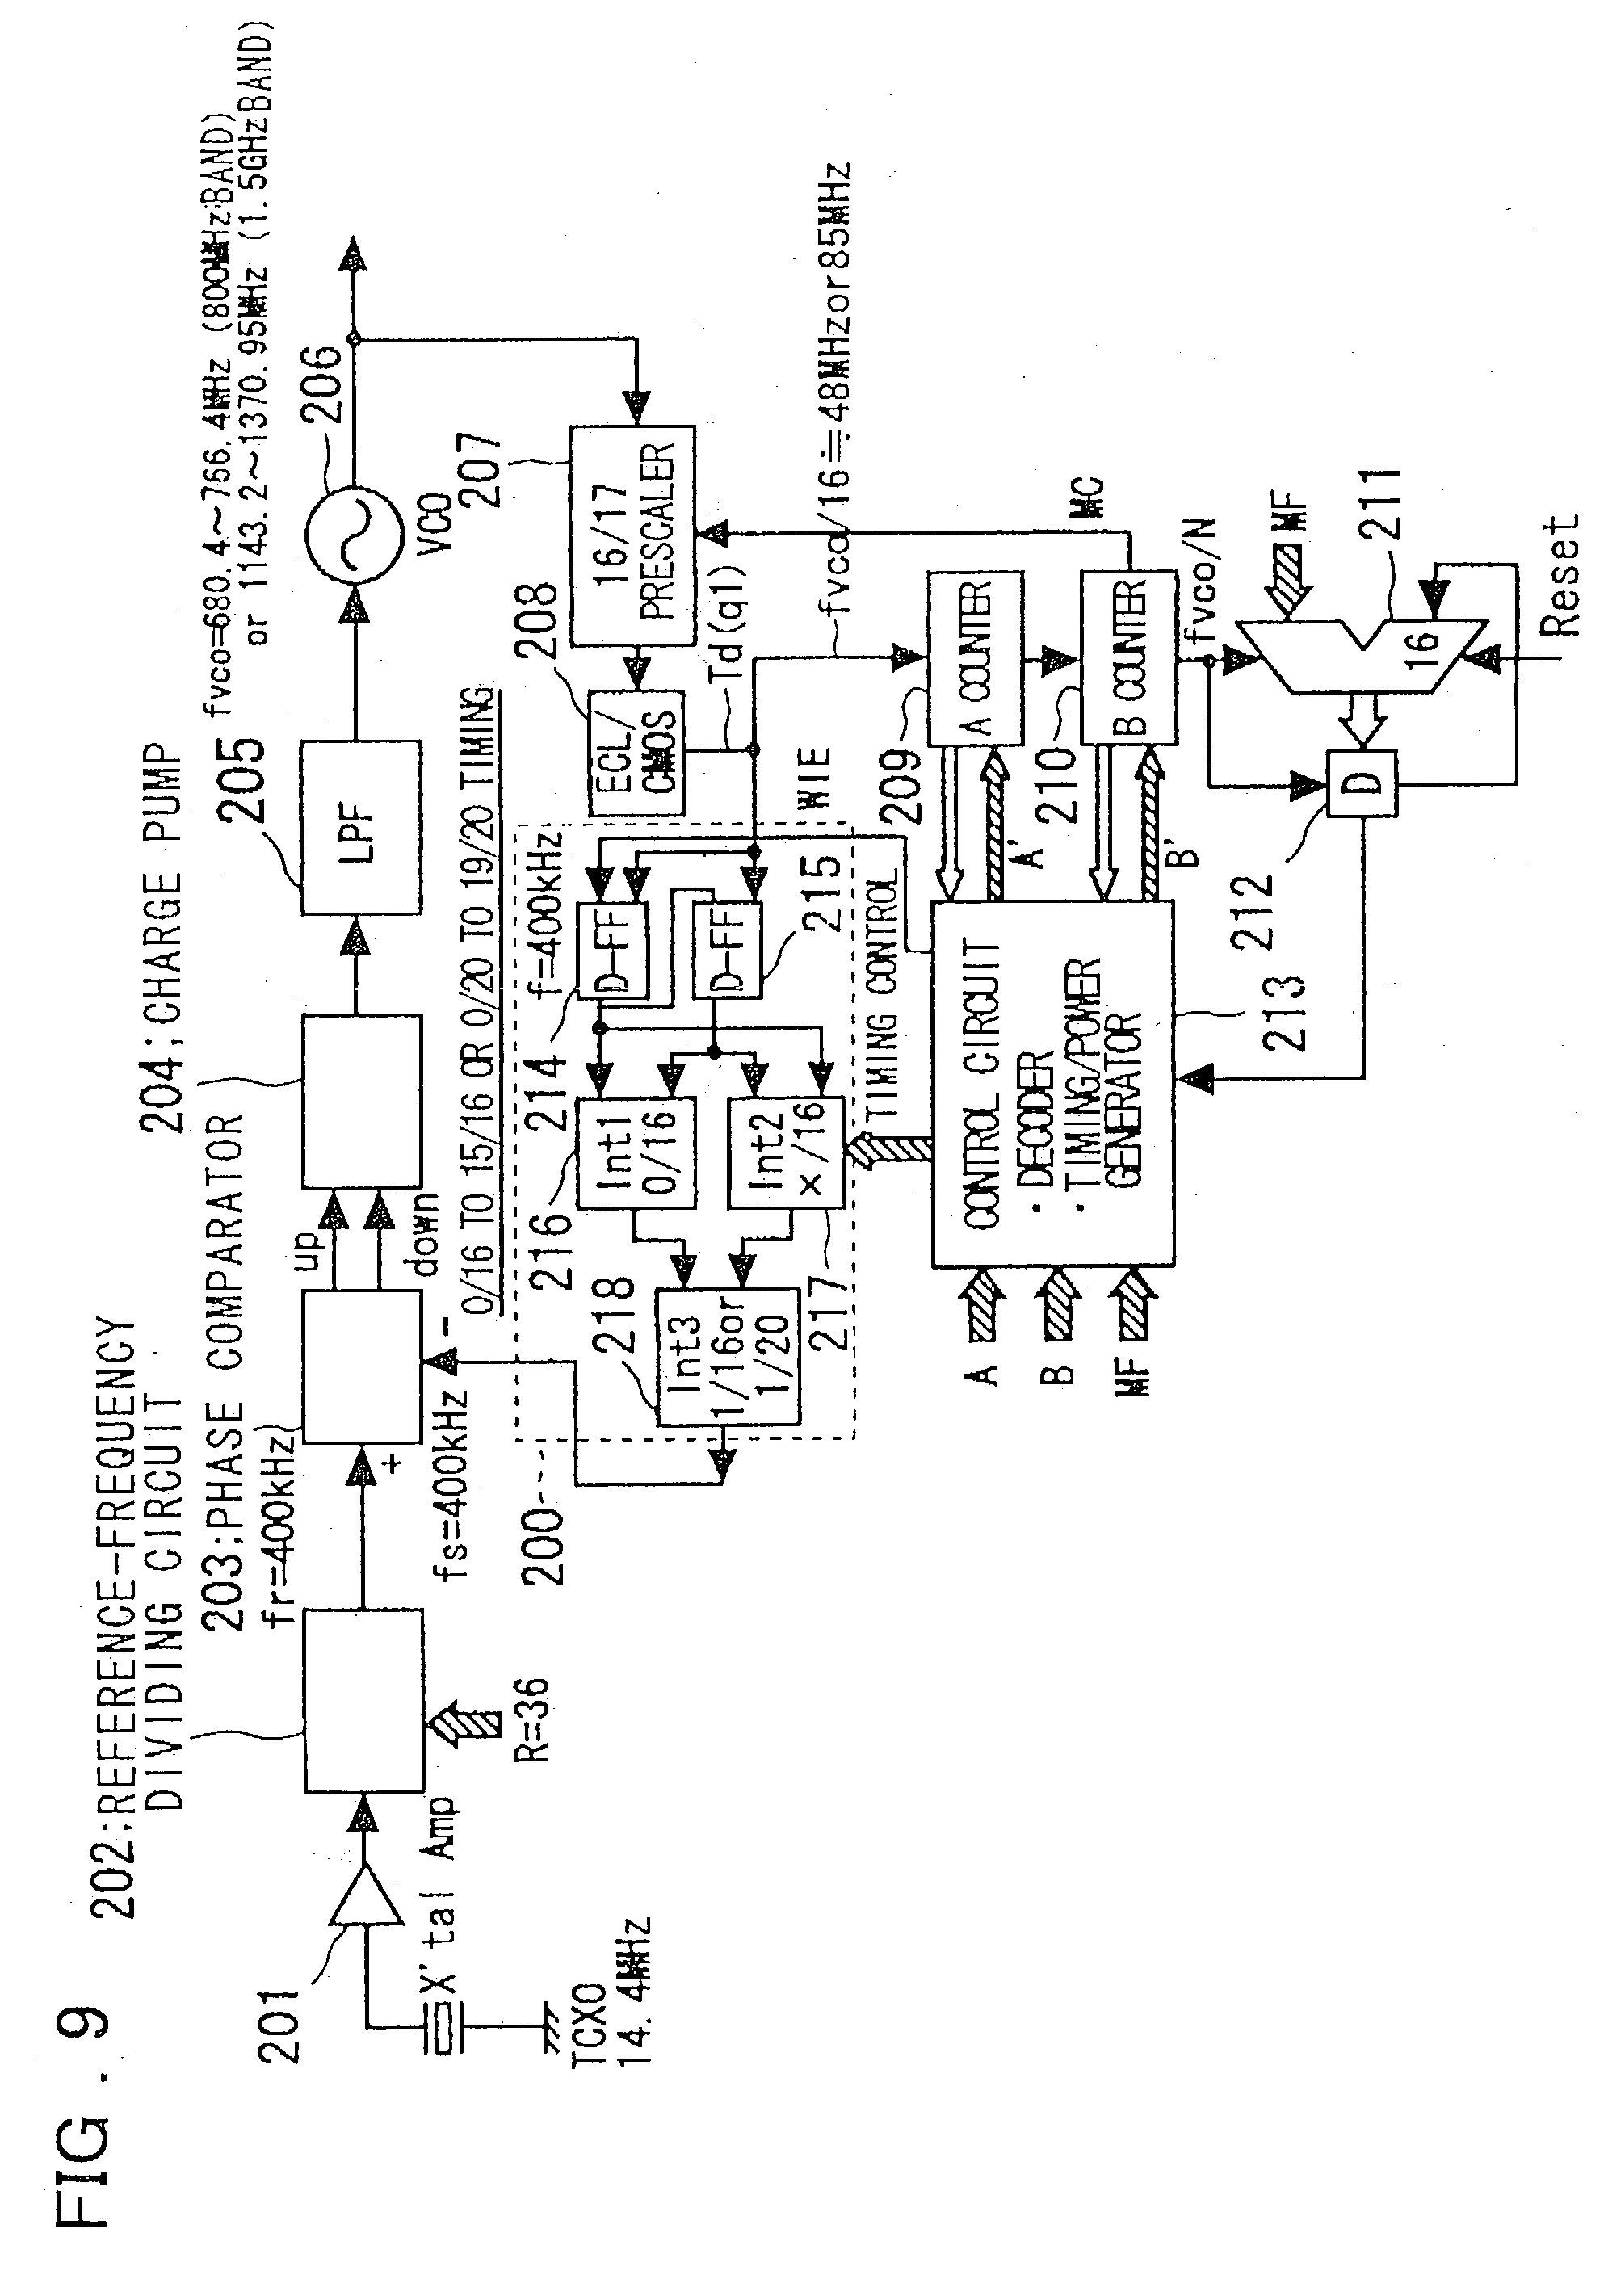 Paten Us20030112079 Pll Circuit Google 5hz 5mhz Function Generator Is Shown In The Chart Patent Drawing